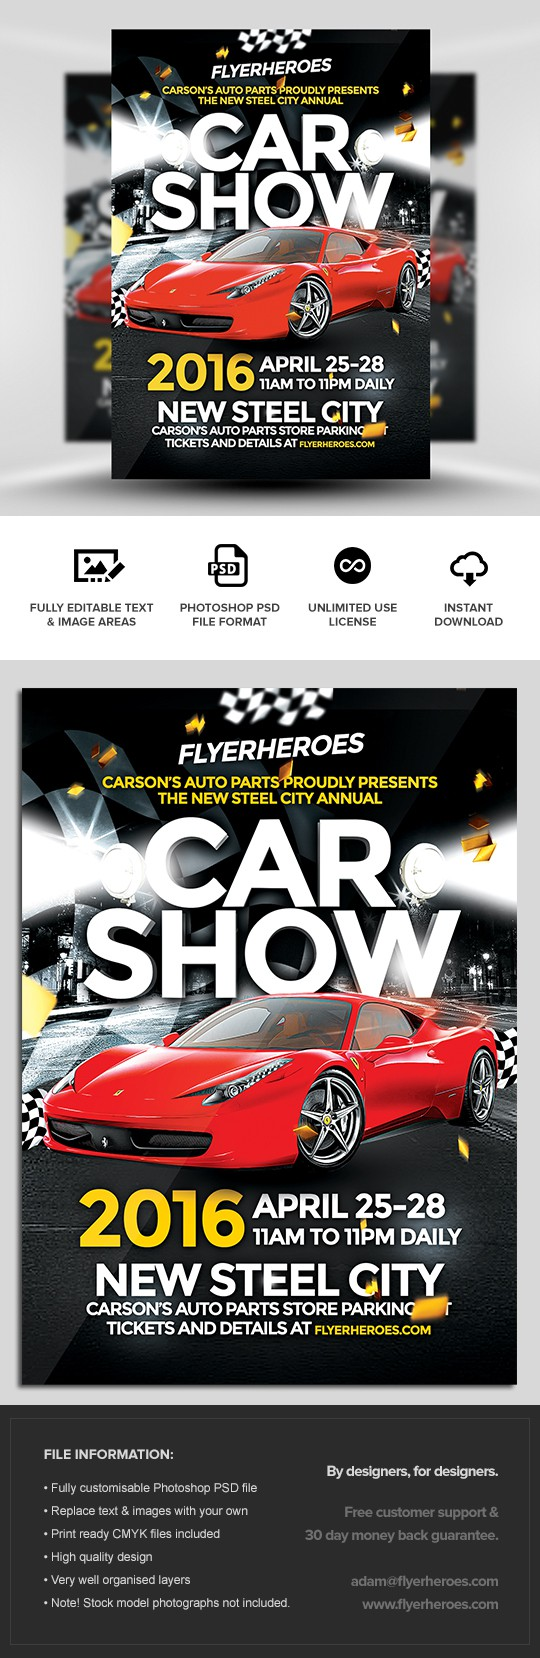 doc car flyers auto s flyer template car s psd car show flyer template flyerheroes car flyers